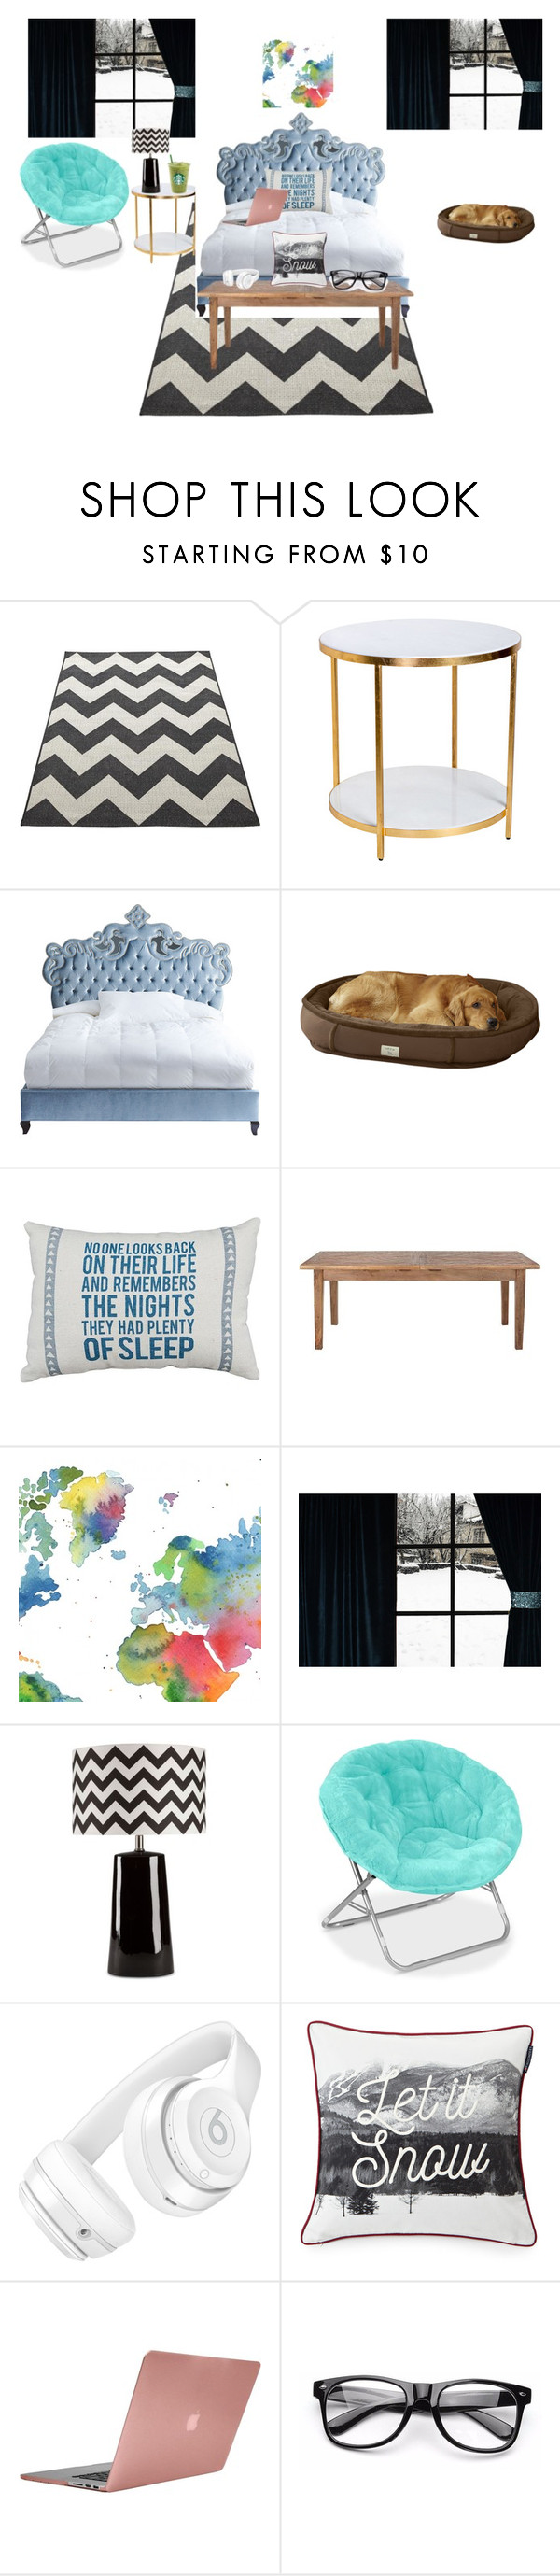 """my room"" by hannah-rugar ❤ liked on Polyvore featuring interior, interiors, interior design, home, home decor, interior decorating, Haute House, Home Decorators Collection, WALL and Surya"